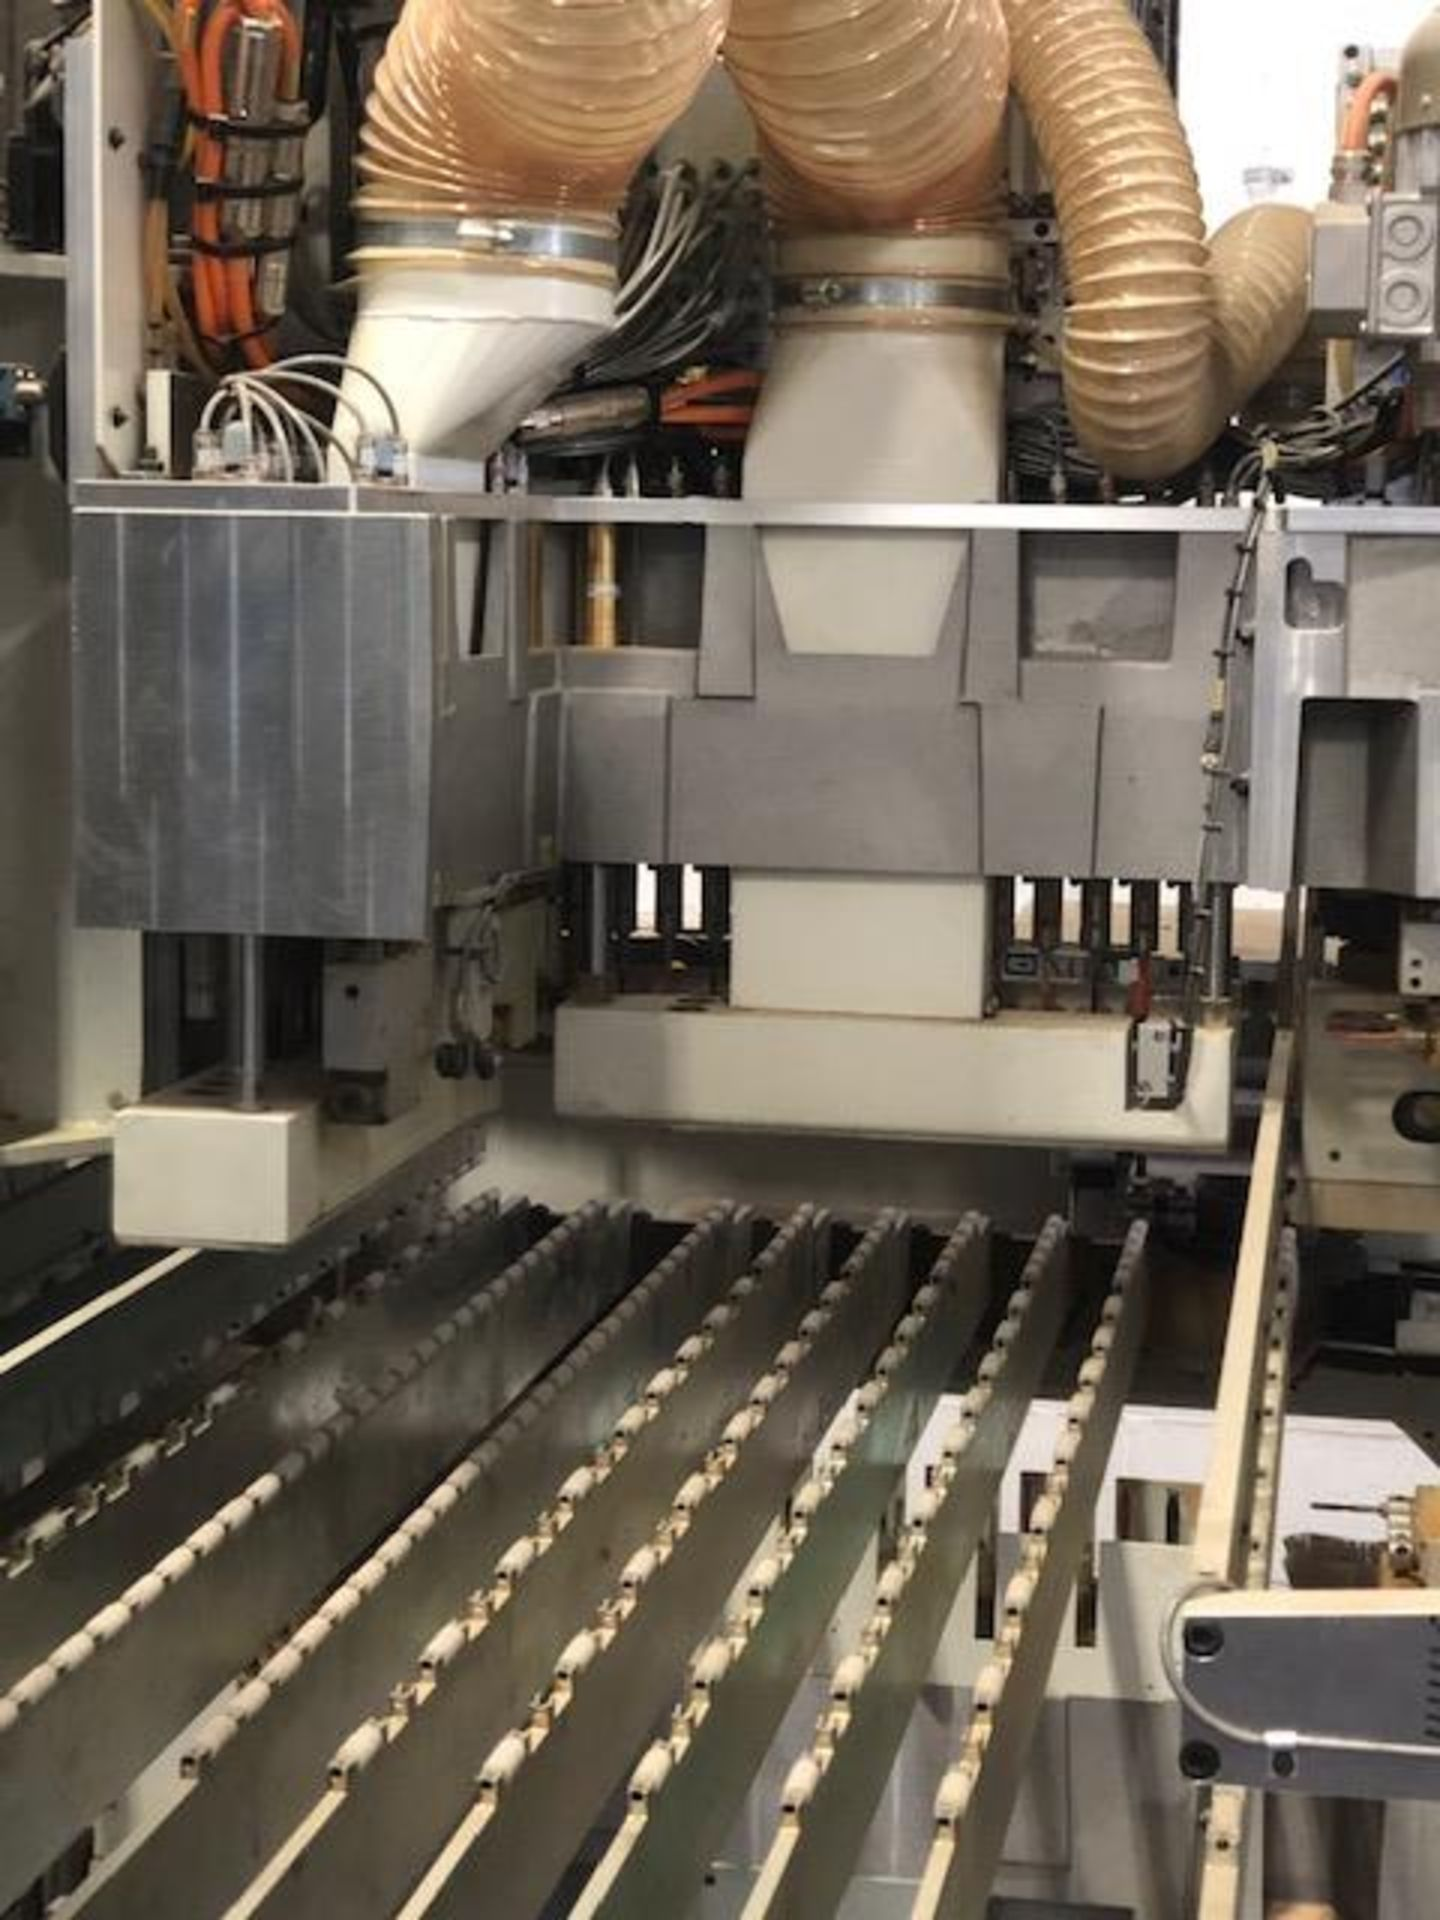 16 MORBIDELLI FORA FRESATRICE CN UNIFLEX S CNC DRILLING MACHINE, 400V, S/N AA2/003783 - Image 3 of 7